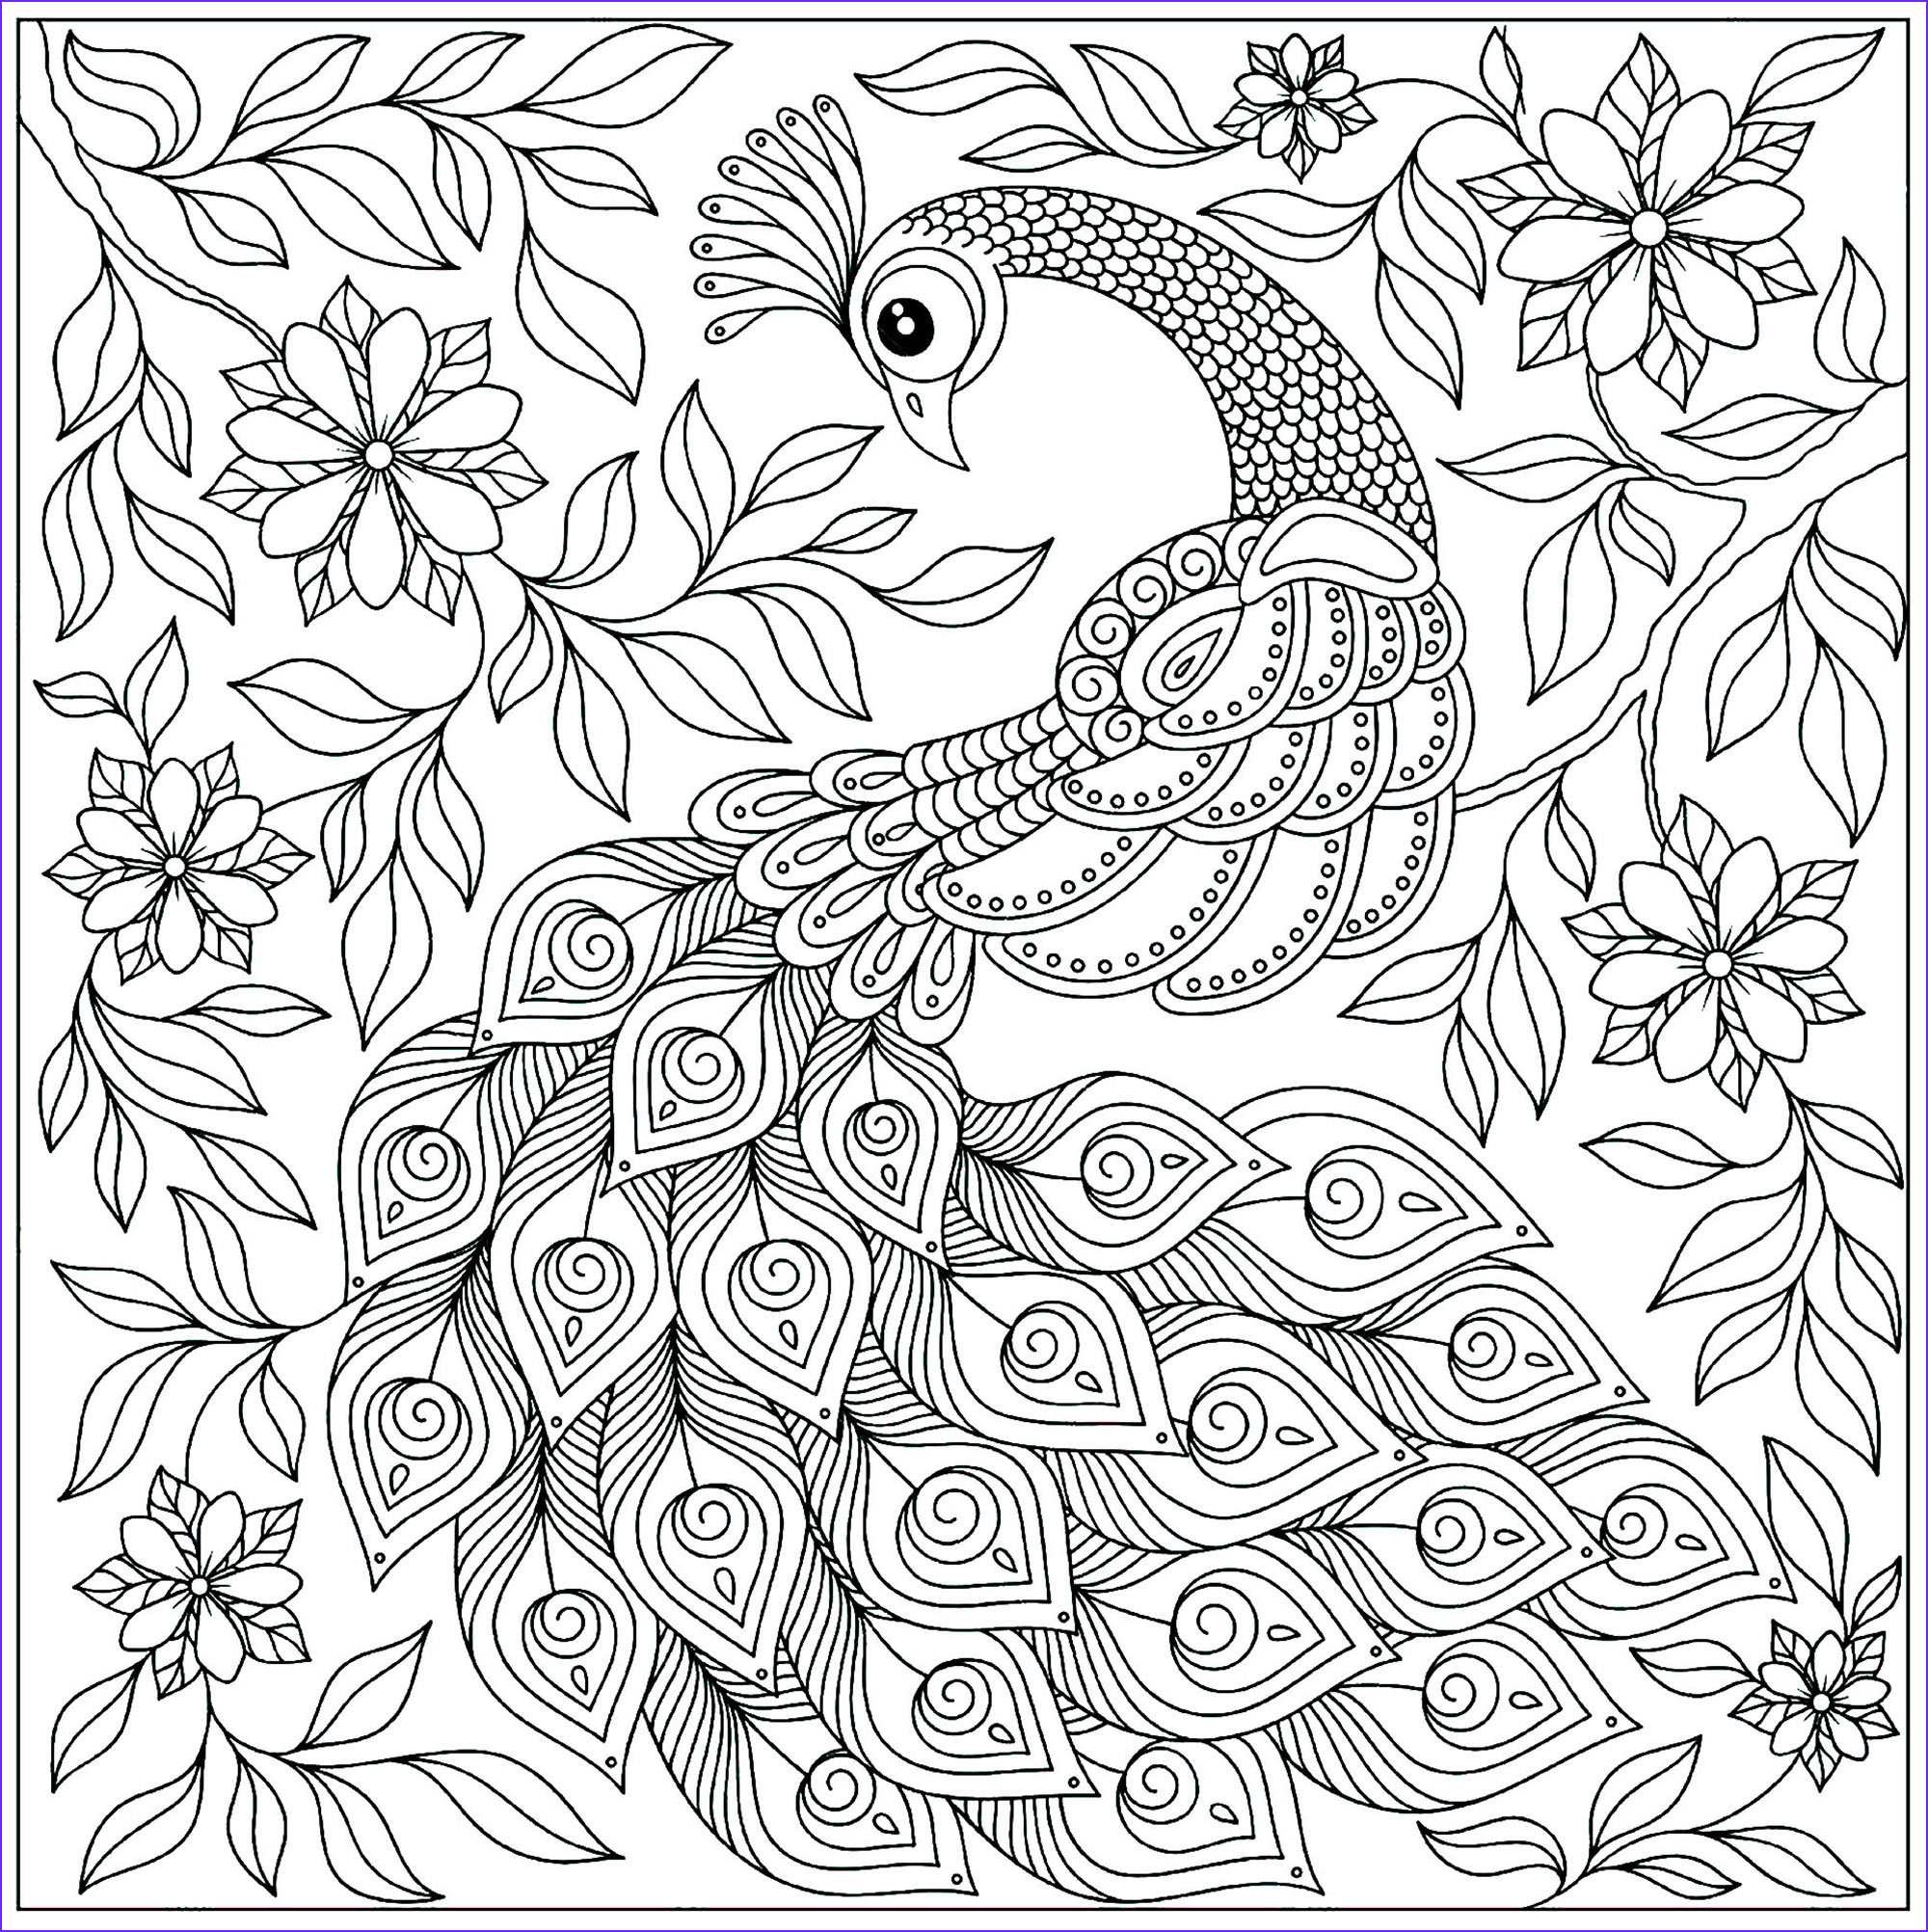 image=peacocks coloring page vintage peacock with flowers 1